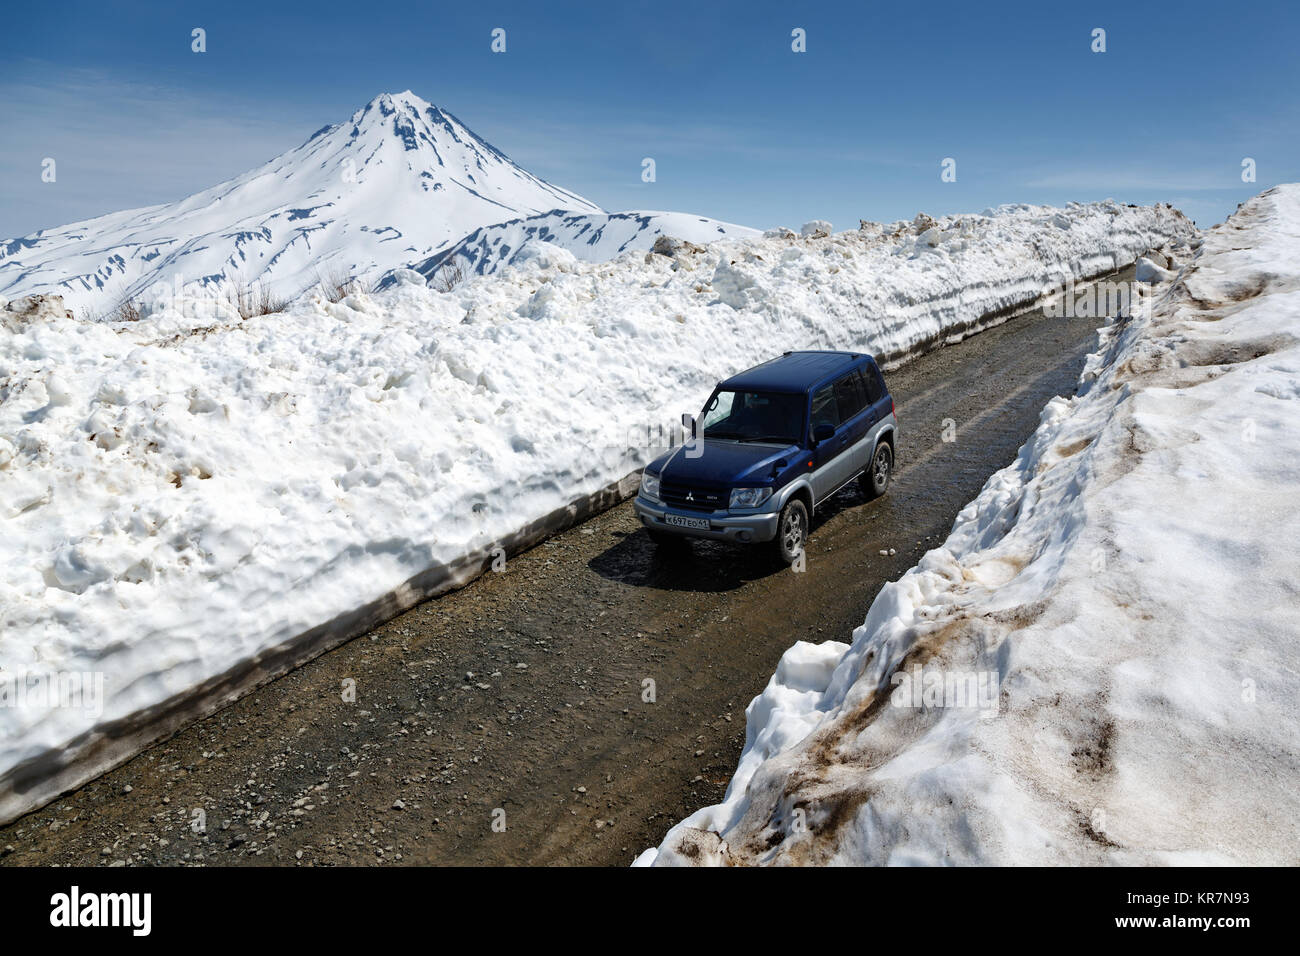 Kamchatka Peninsula, Russia: Japanese off-road car Mitsubishi driving on mountain road in snow tunnel on background - Stock Image